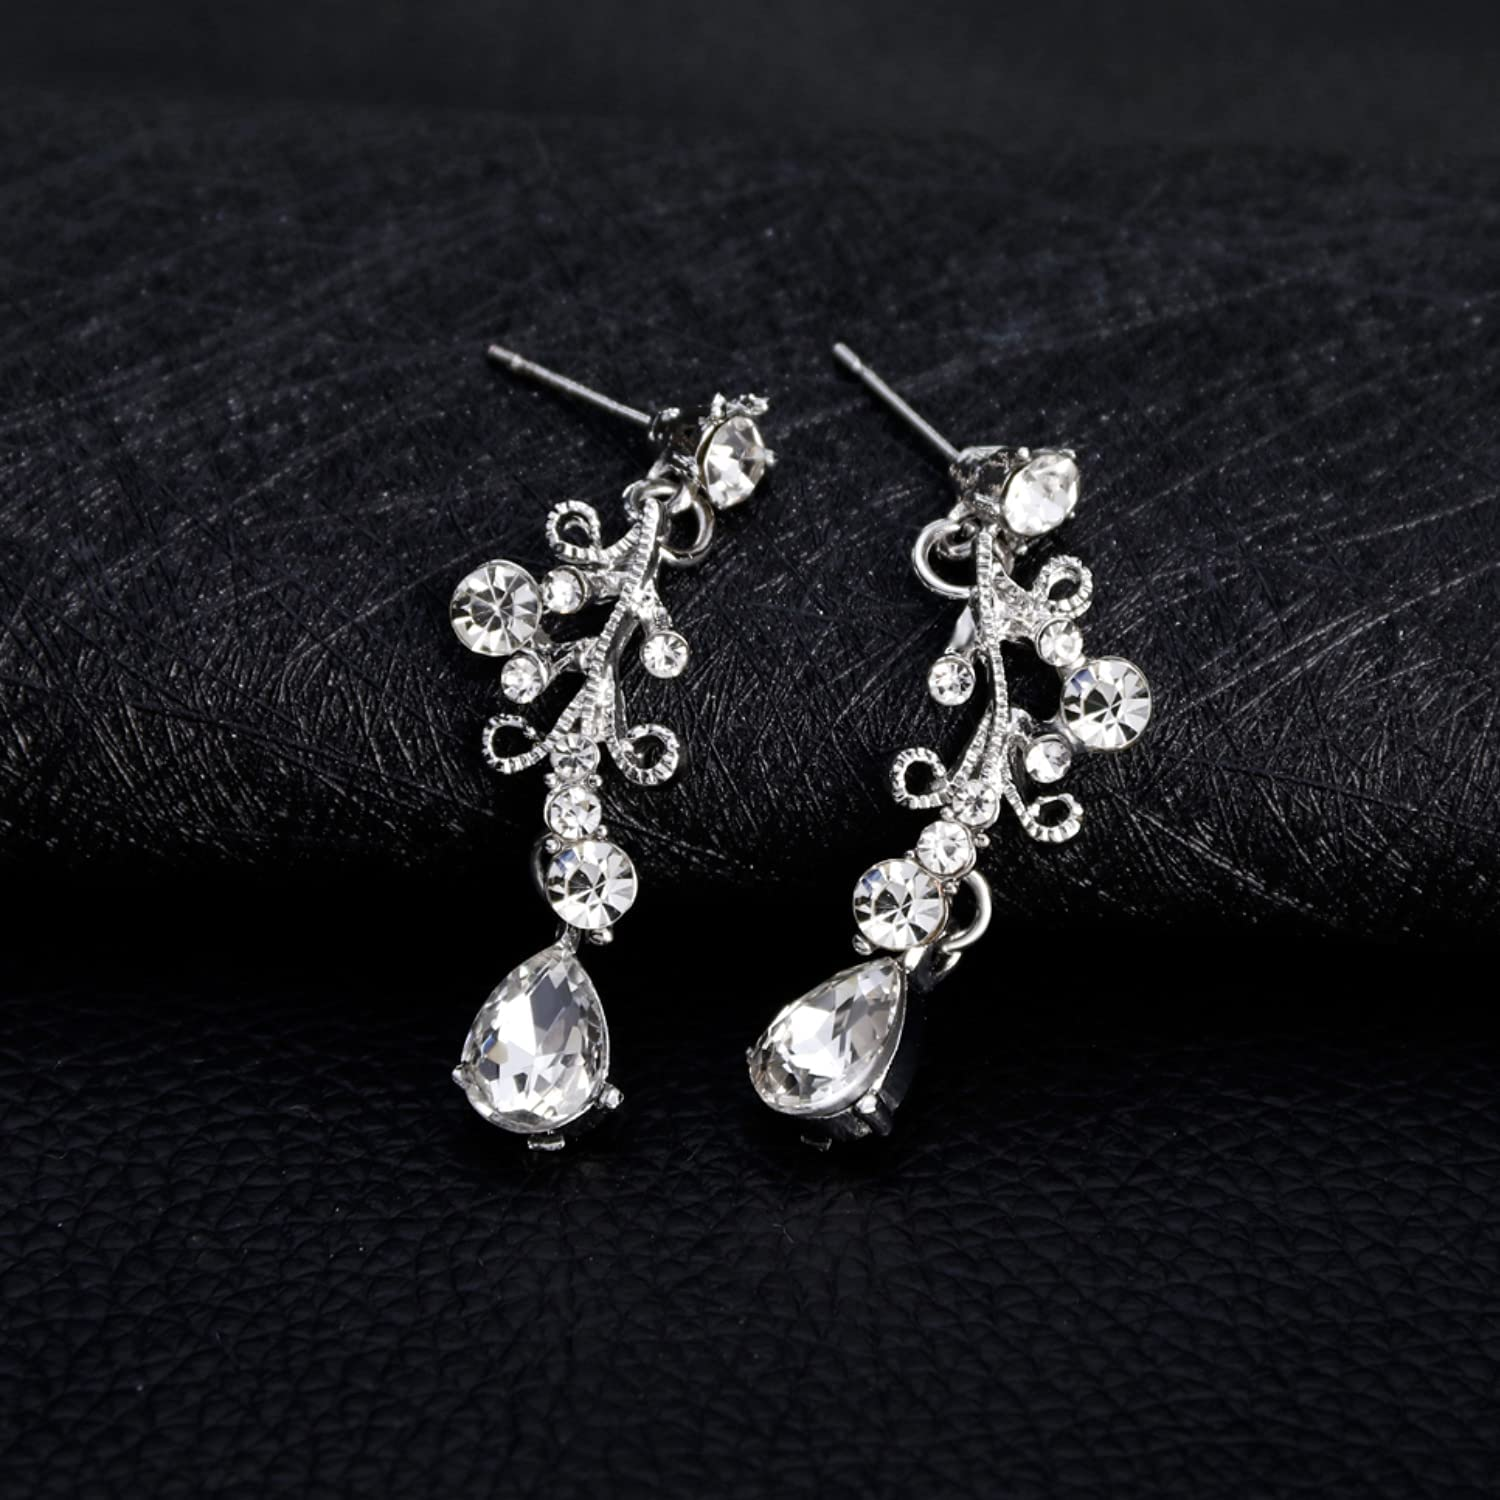 FUTTMI Crystal Bridal Jewelry Set for Women Crystal Rhinestone Necklace Earrings Jewelry Set for Prom Wedding Bride Bridesmaids Gift